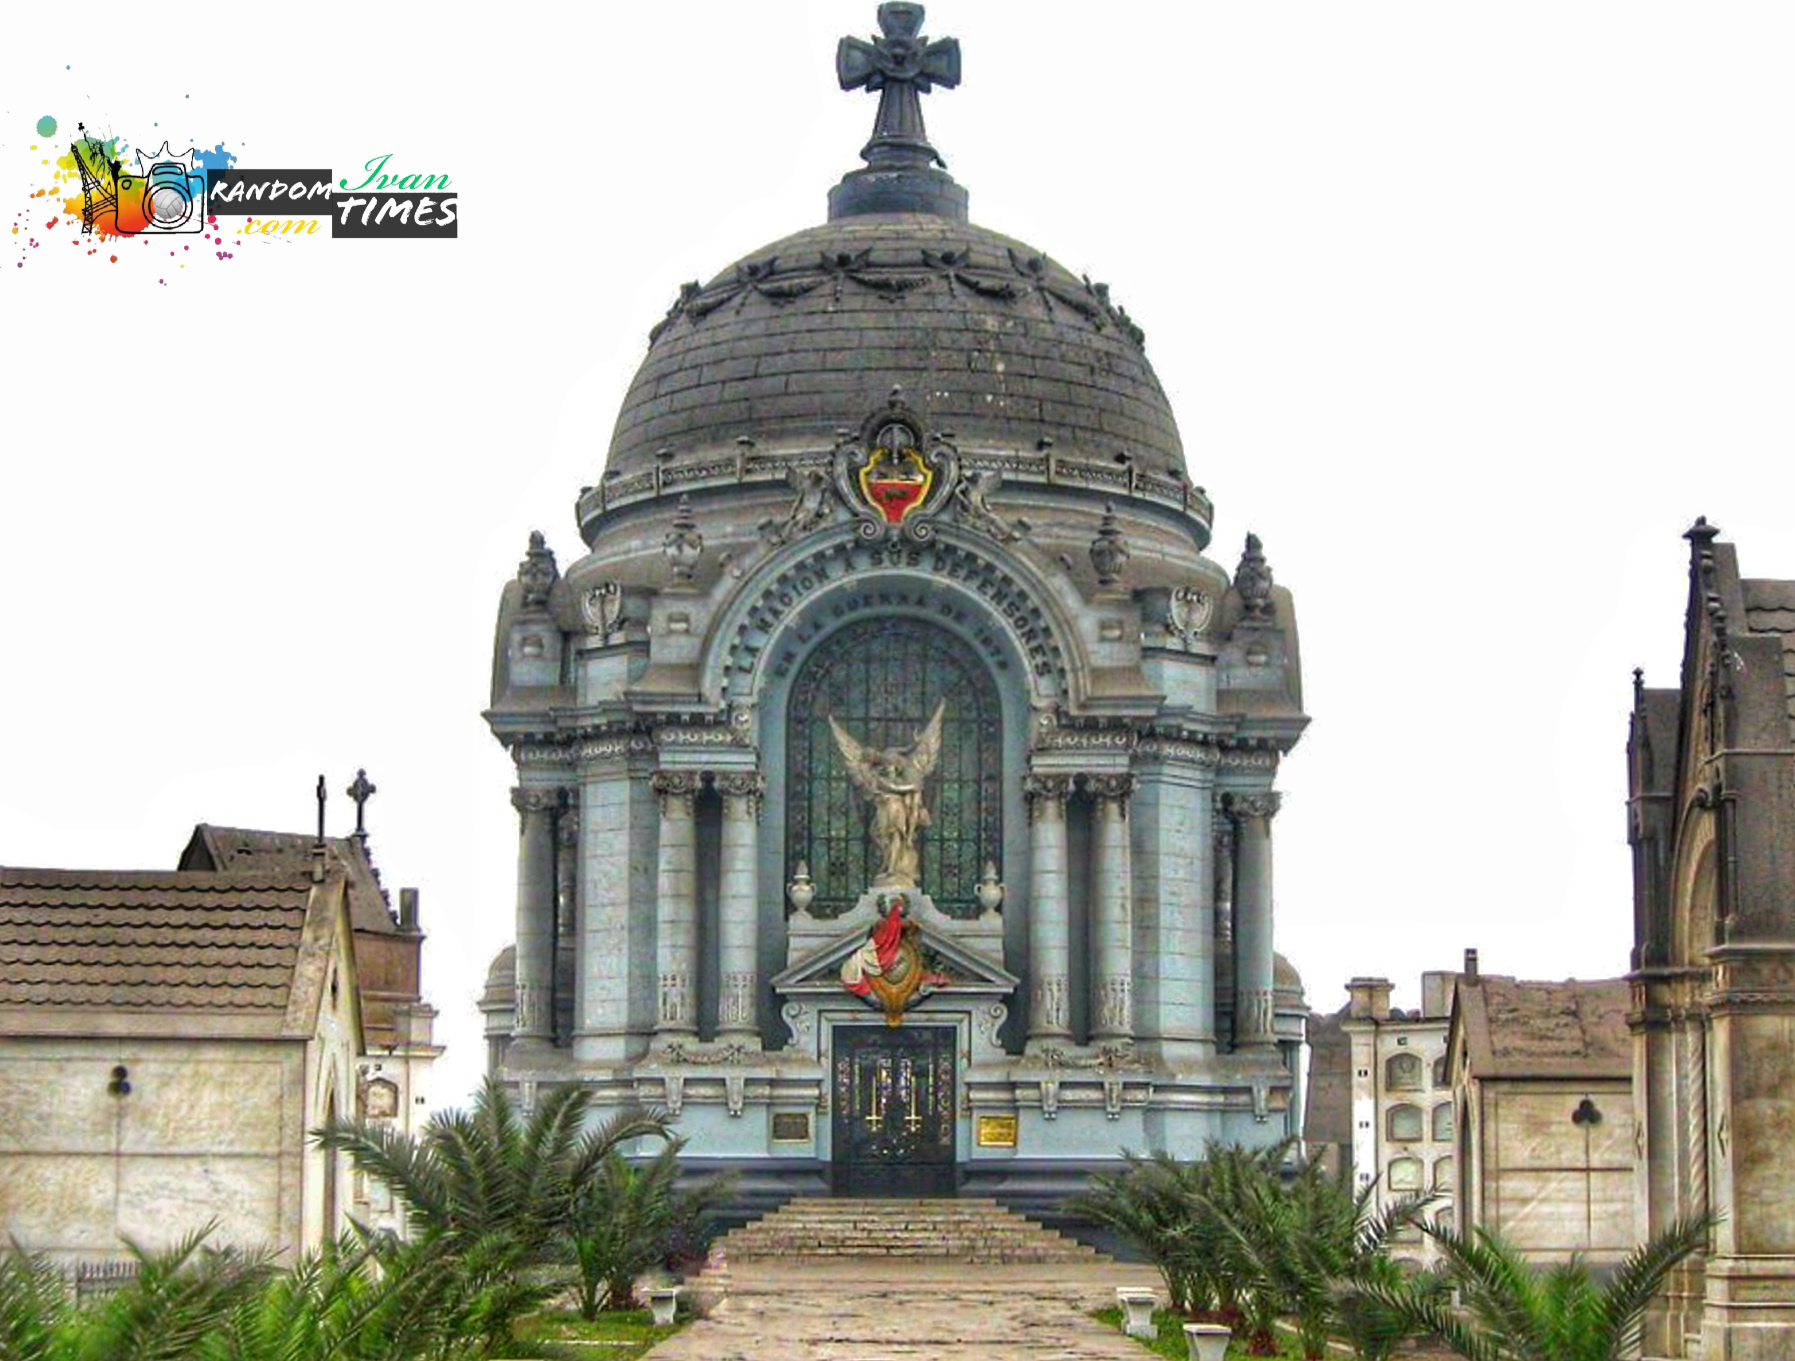 Cripta de los Héroes: the final resting place for many of Peru's greatest military heroes.